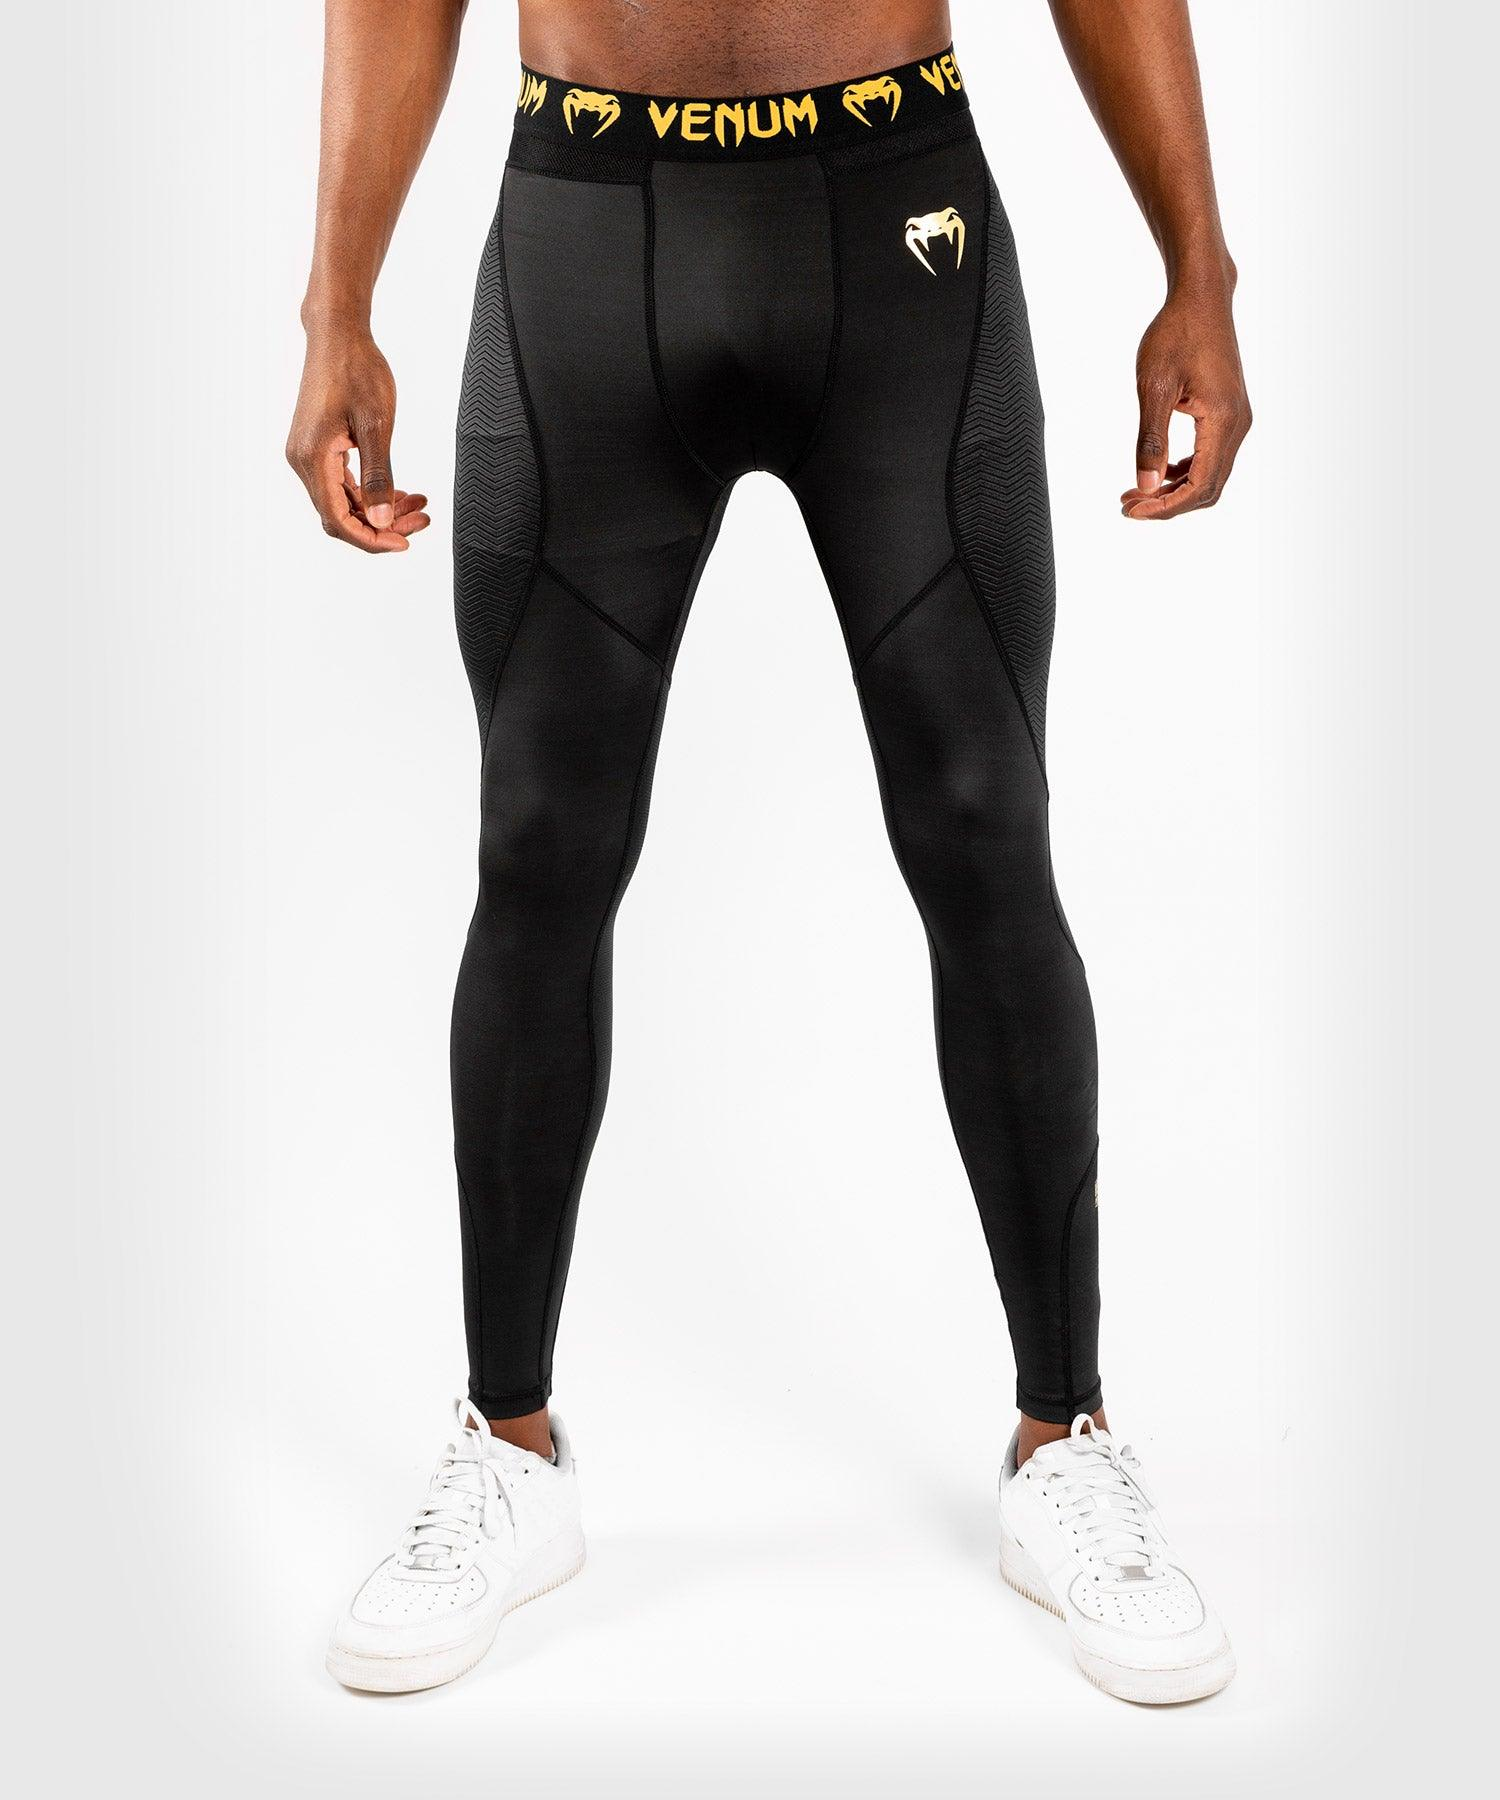 Venum G-Fit Spats – Black/Gold picture 1